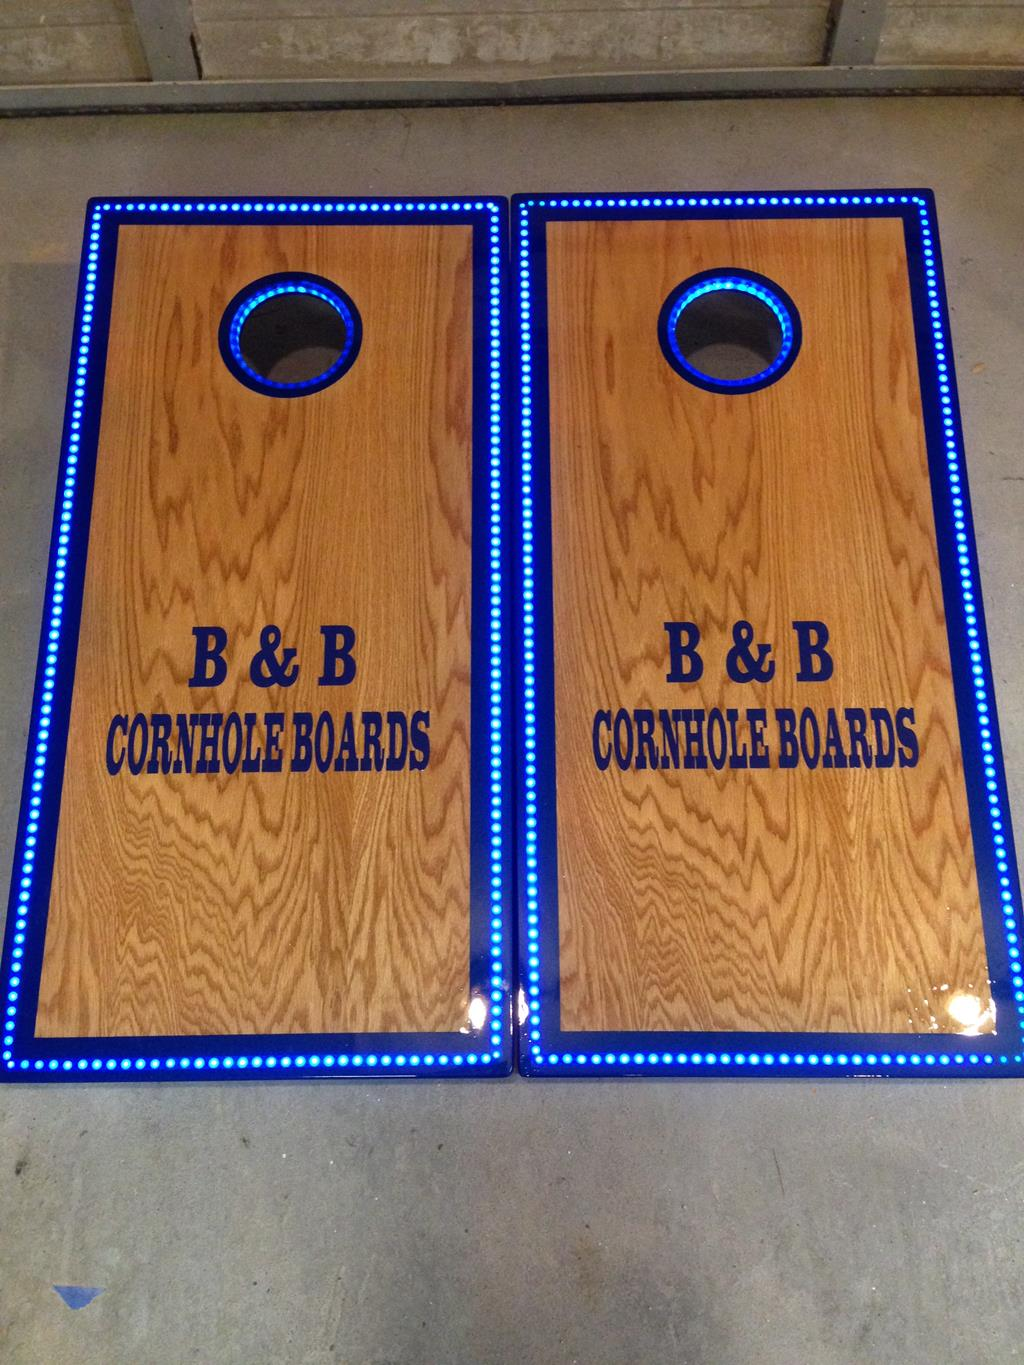 Our Company Boards